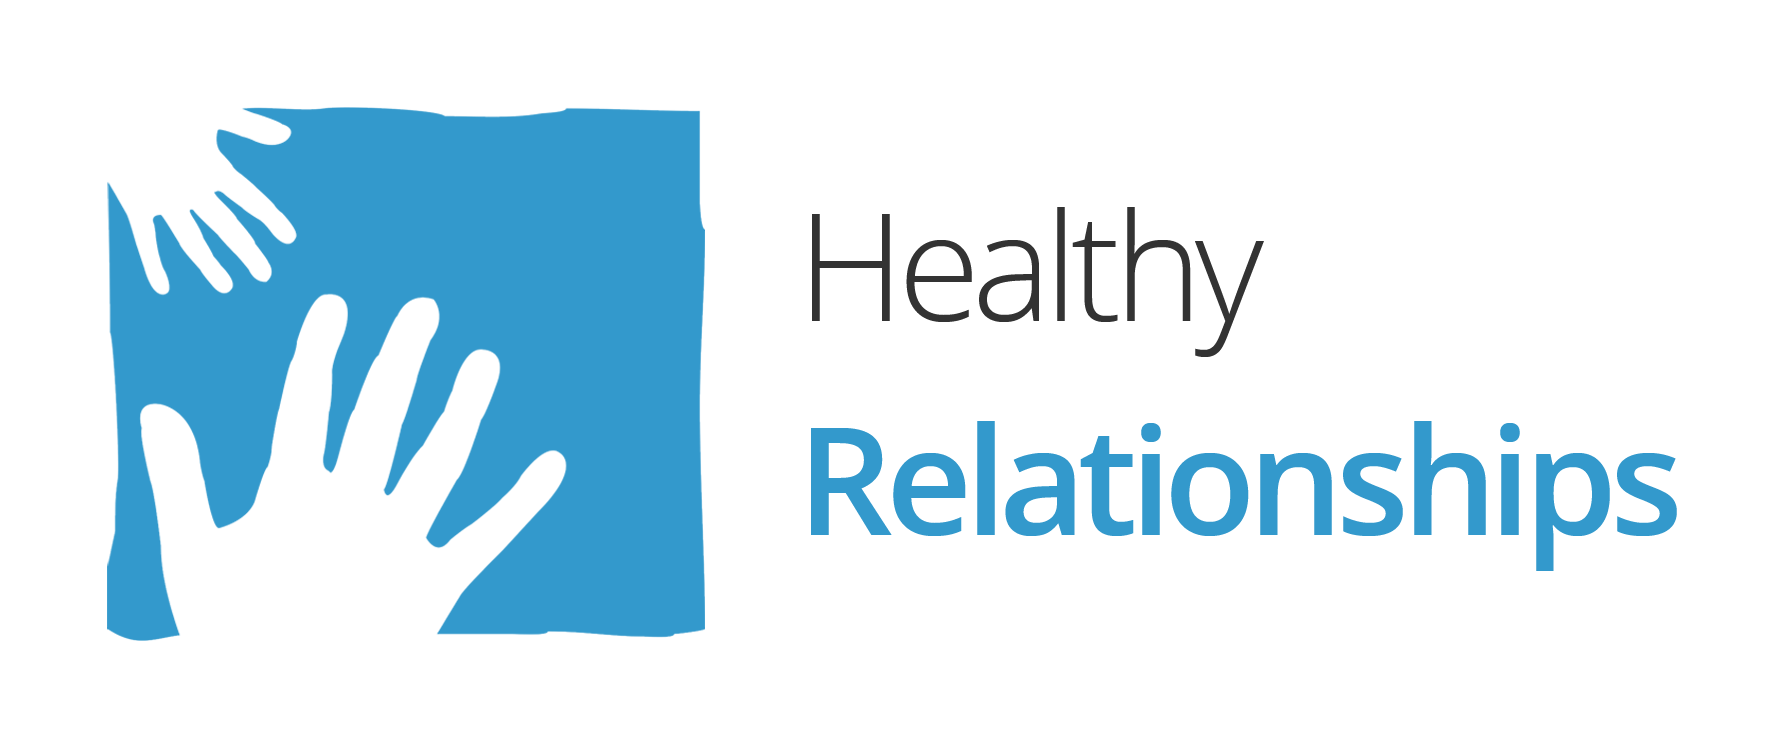 Healthy relationships logo